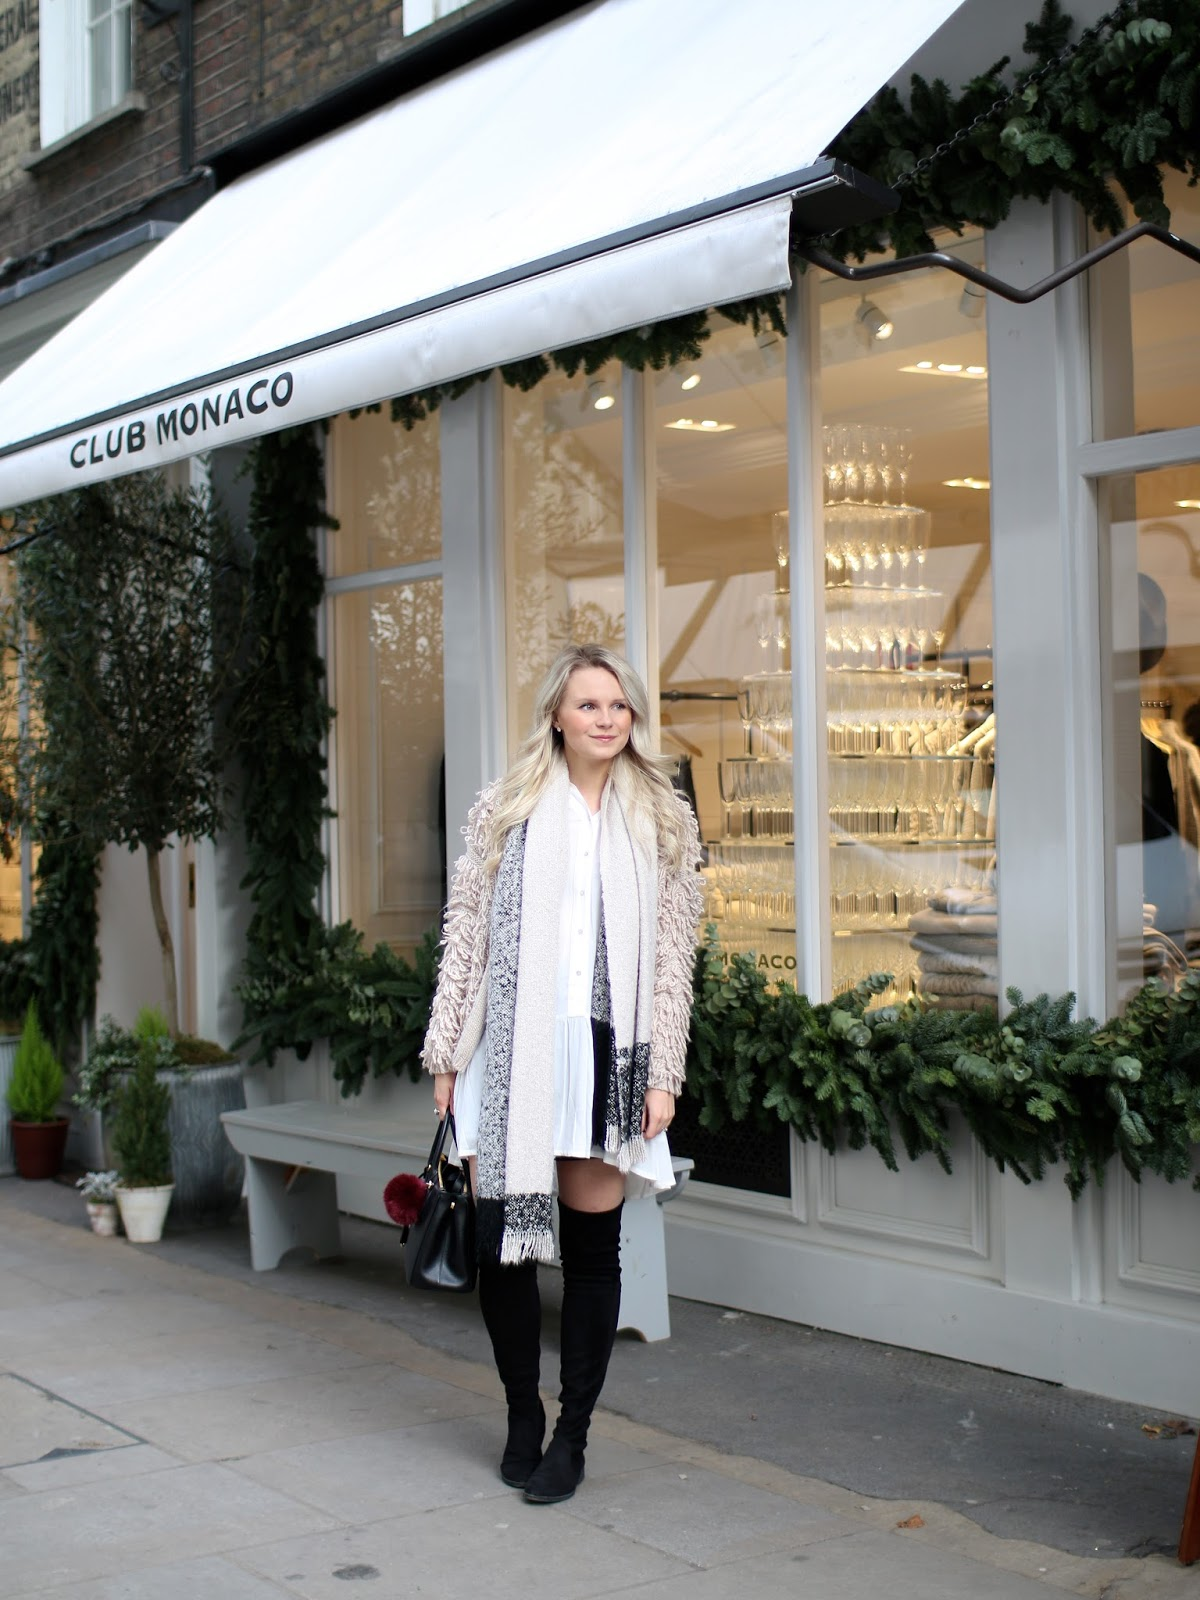 exploring seven dials in london, while shopping in my black over the knee boots from Office